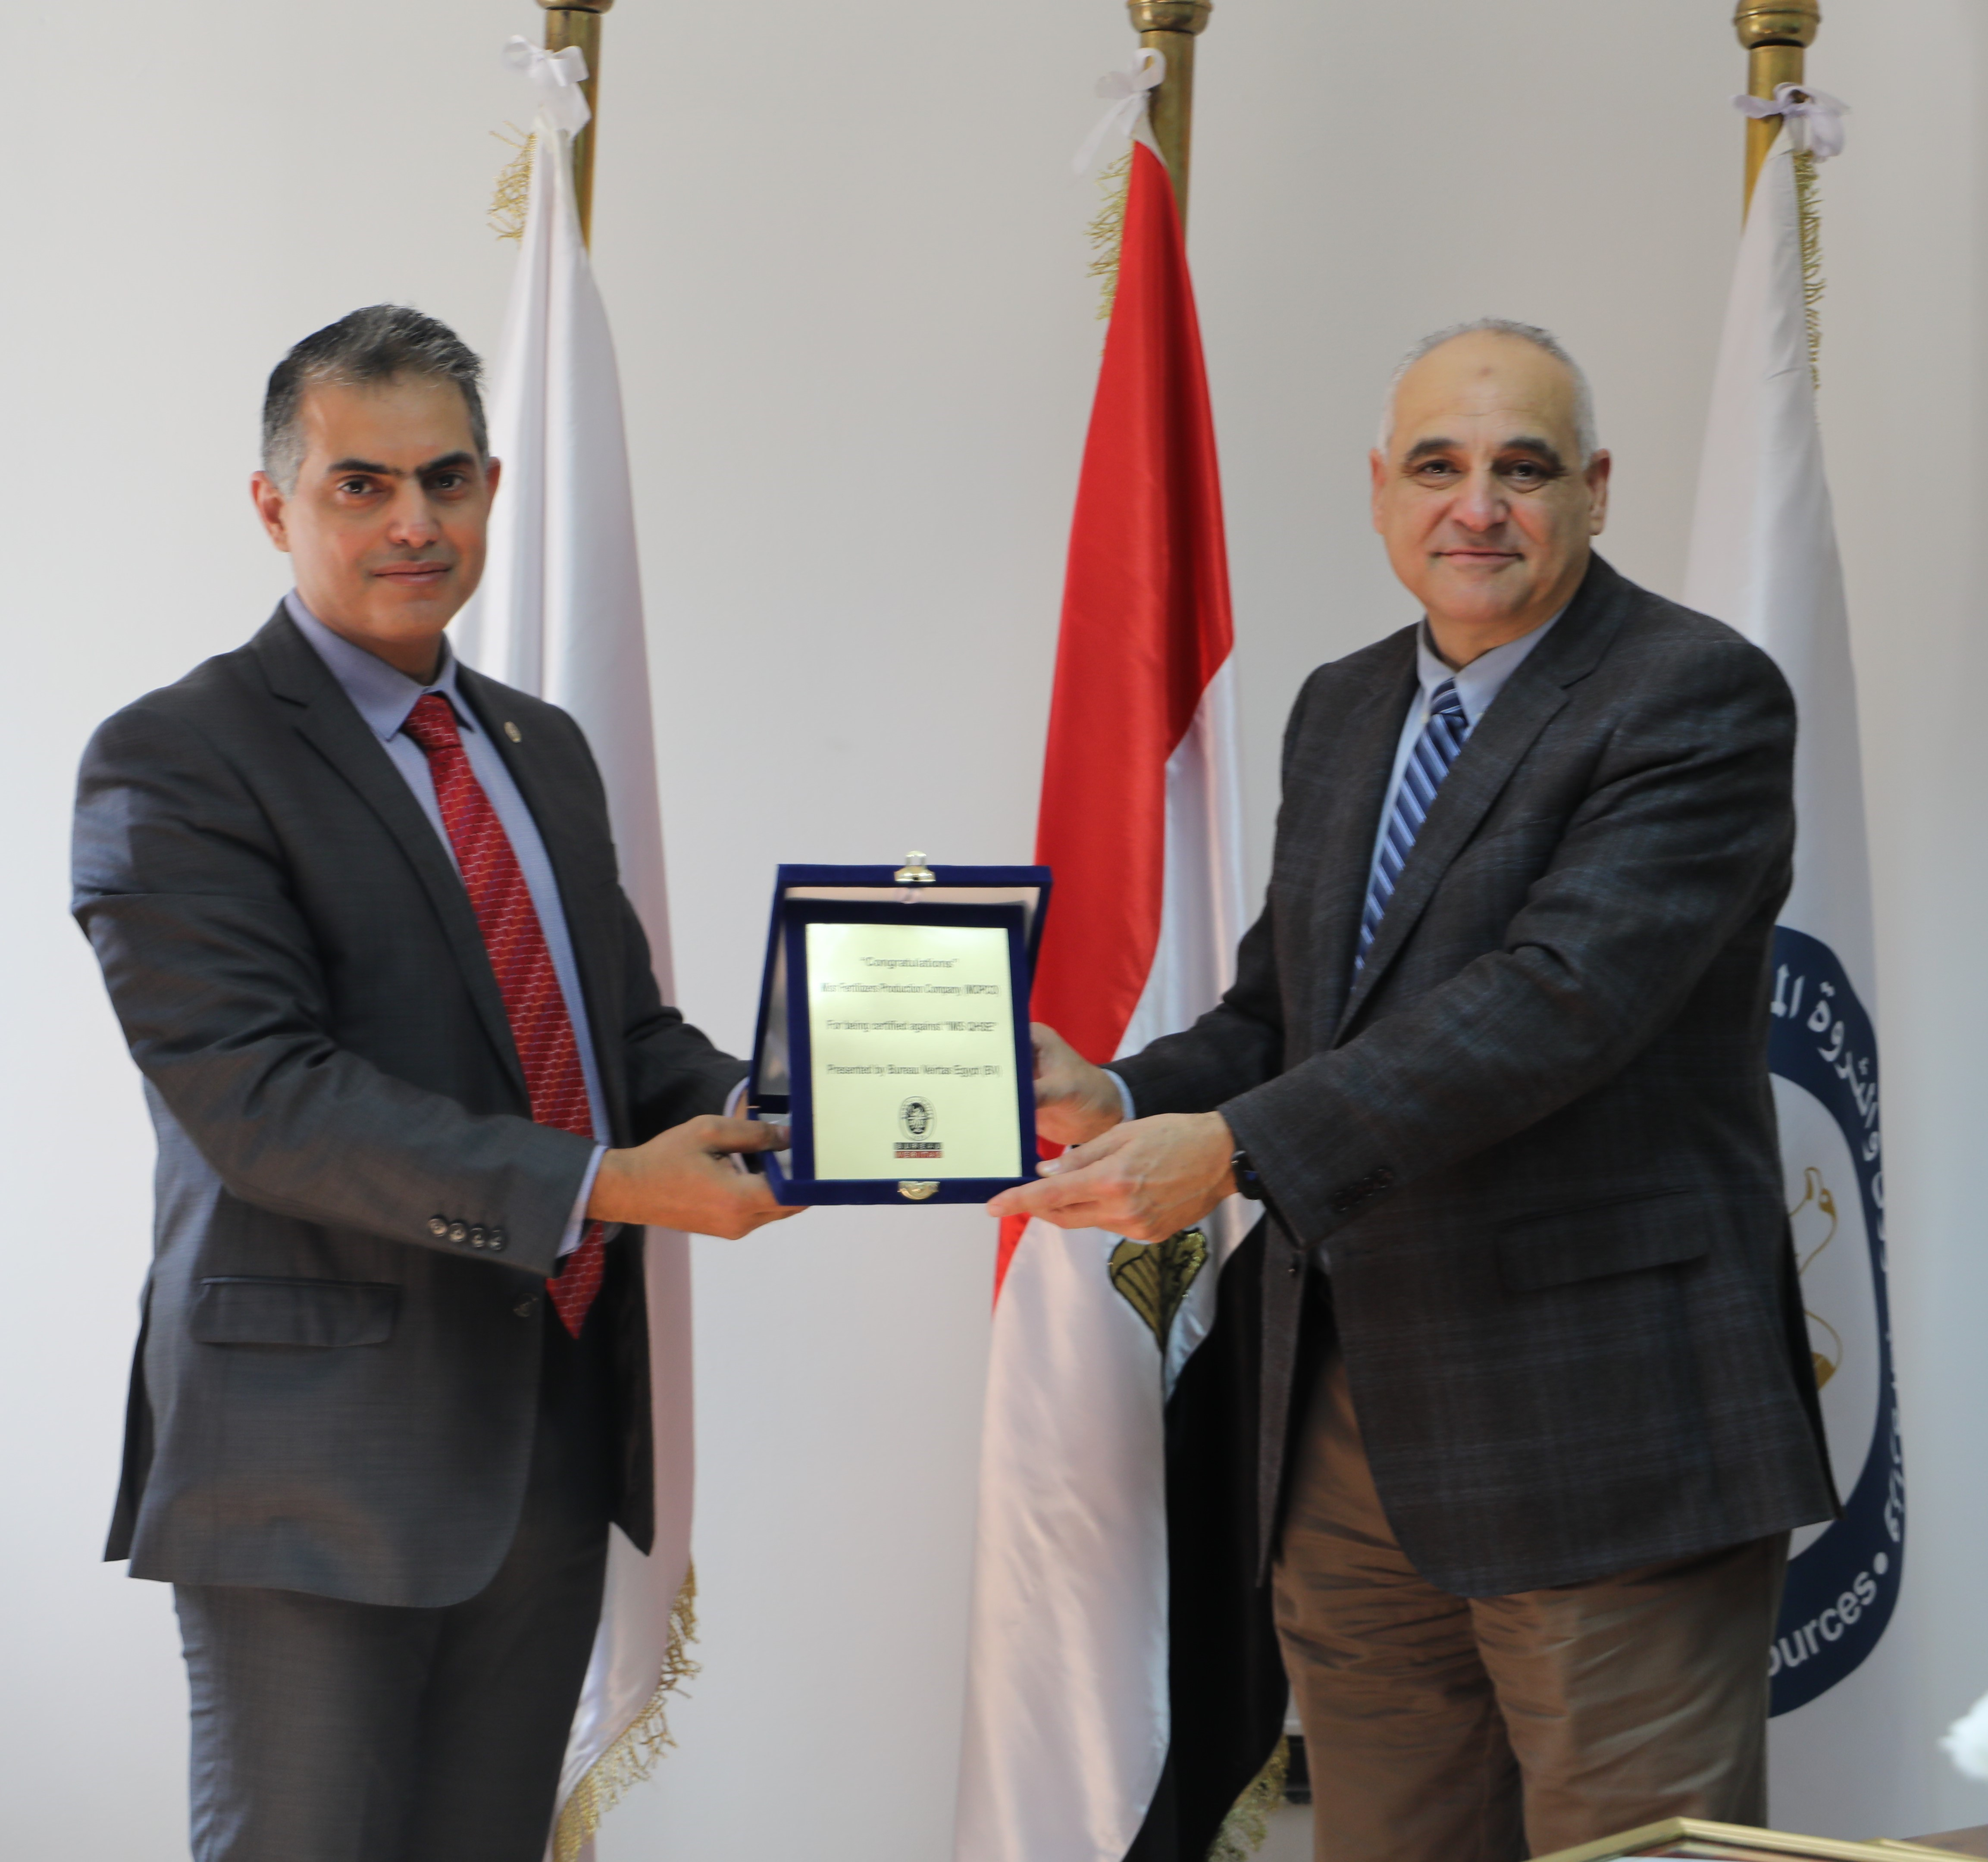 Mopco gets 3 ISO certificates in quality assurance